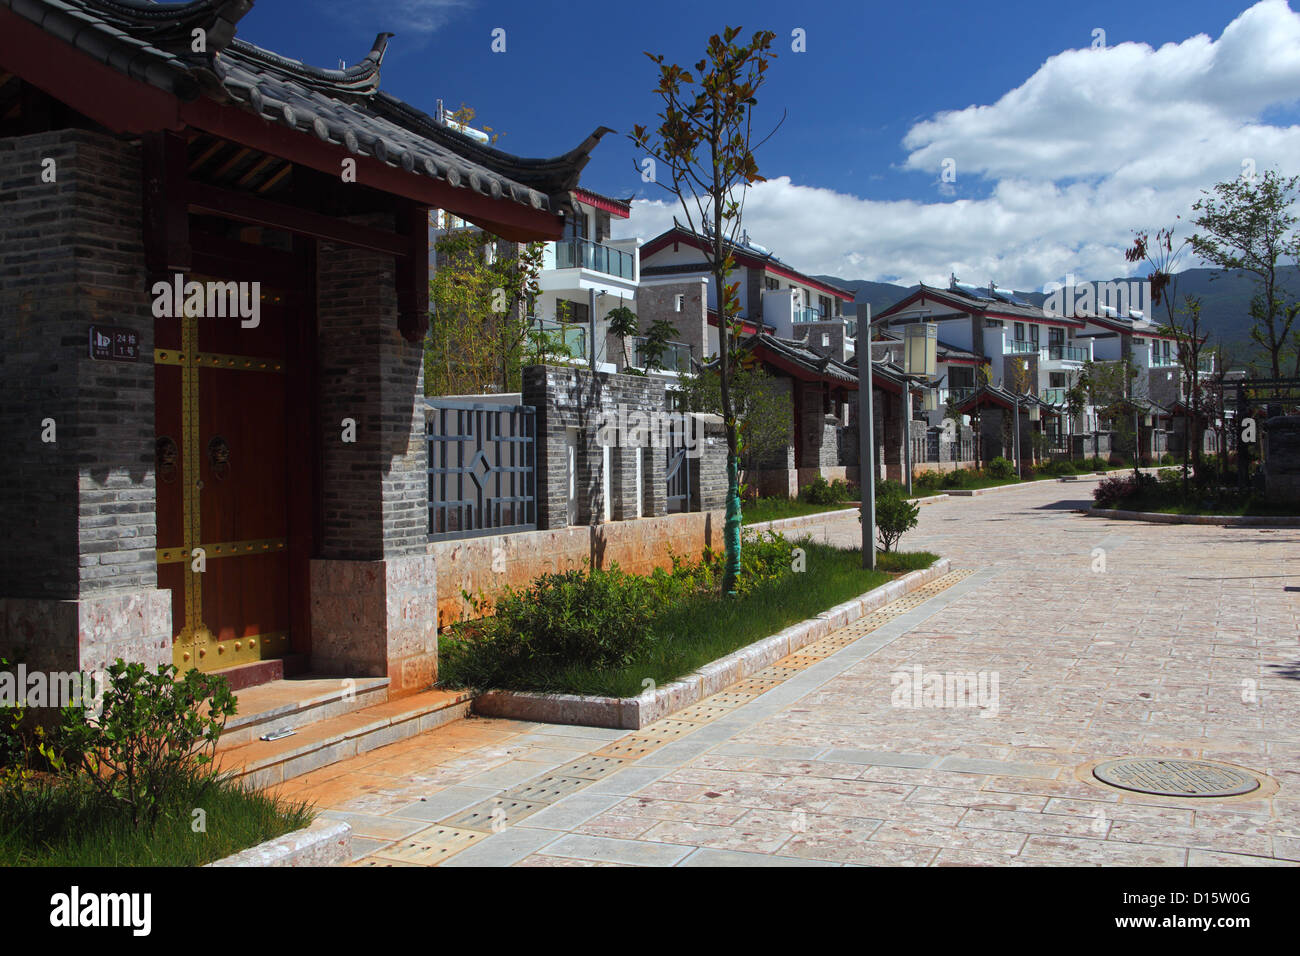 Modern Chinese Housing Area Near The Town Of Lijiang In South Central Yunnan ProvinceBuild TradNaxi Design And Colours That Region